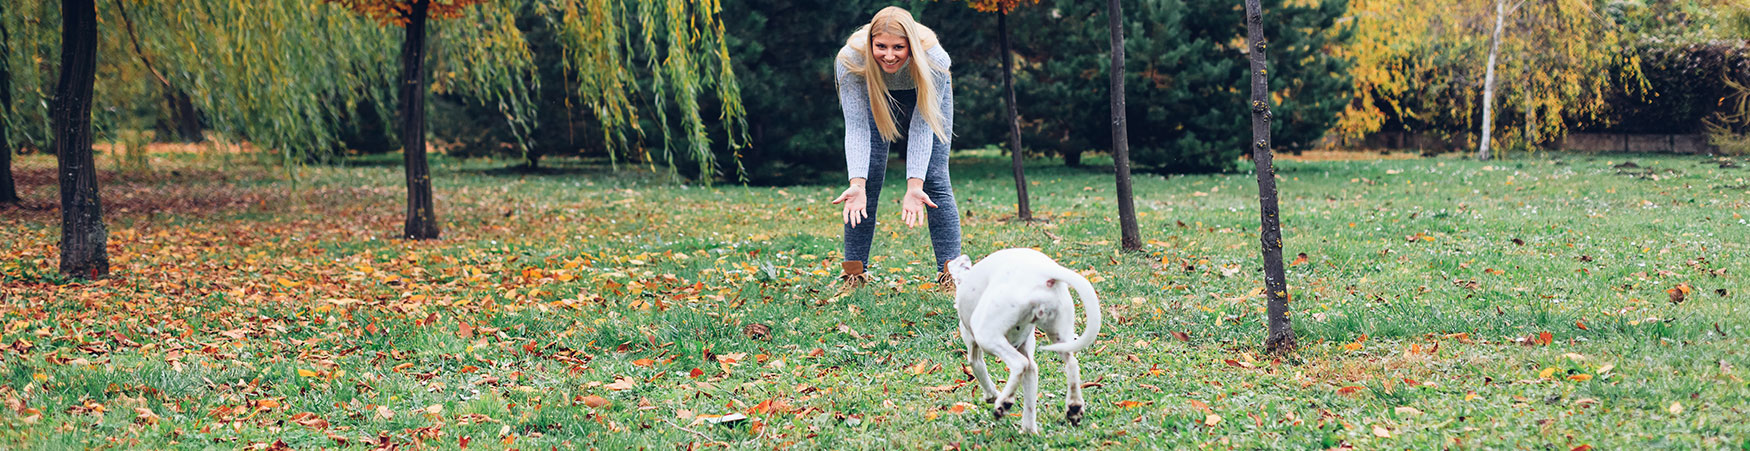 In-home Dog Training and Puppy Training in North Carolina Charlotte Region